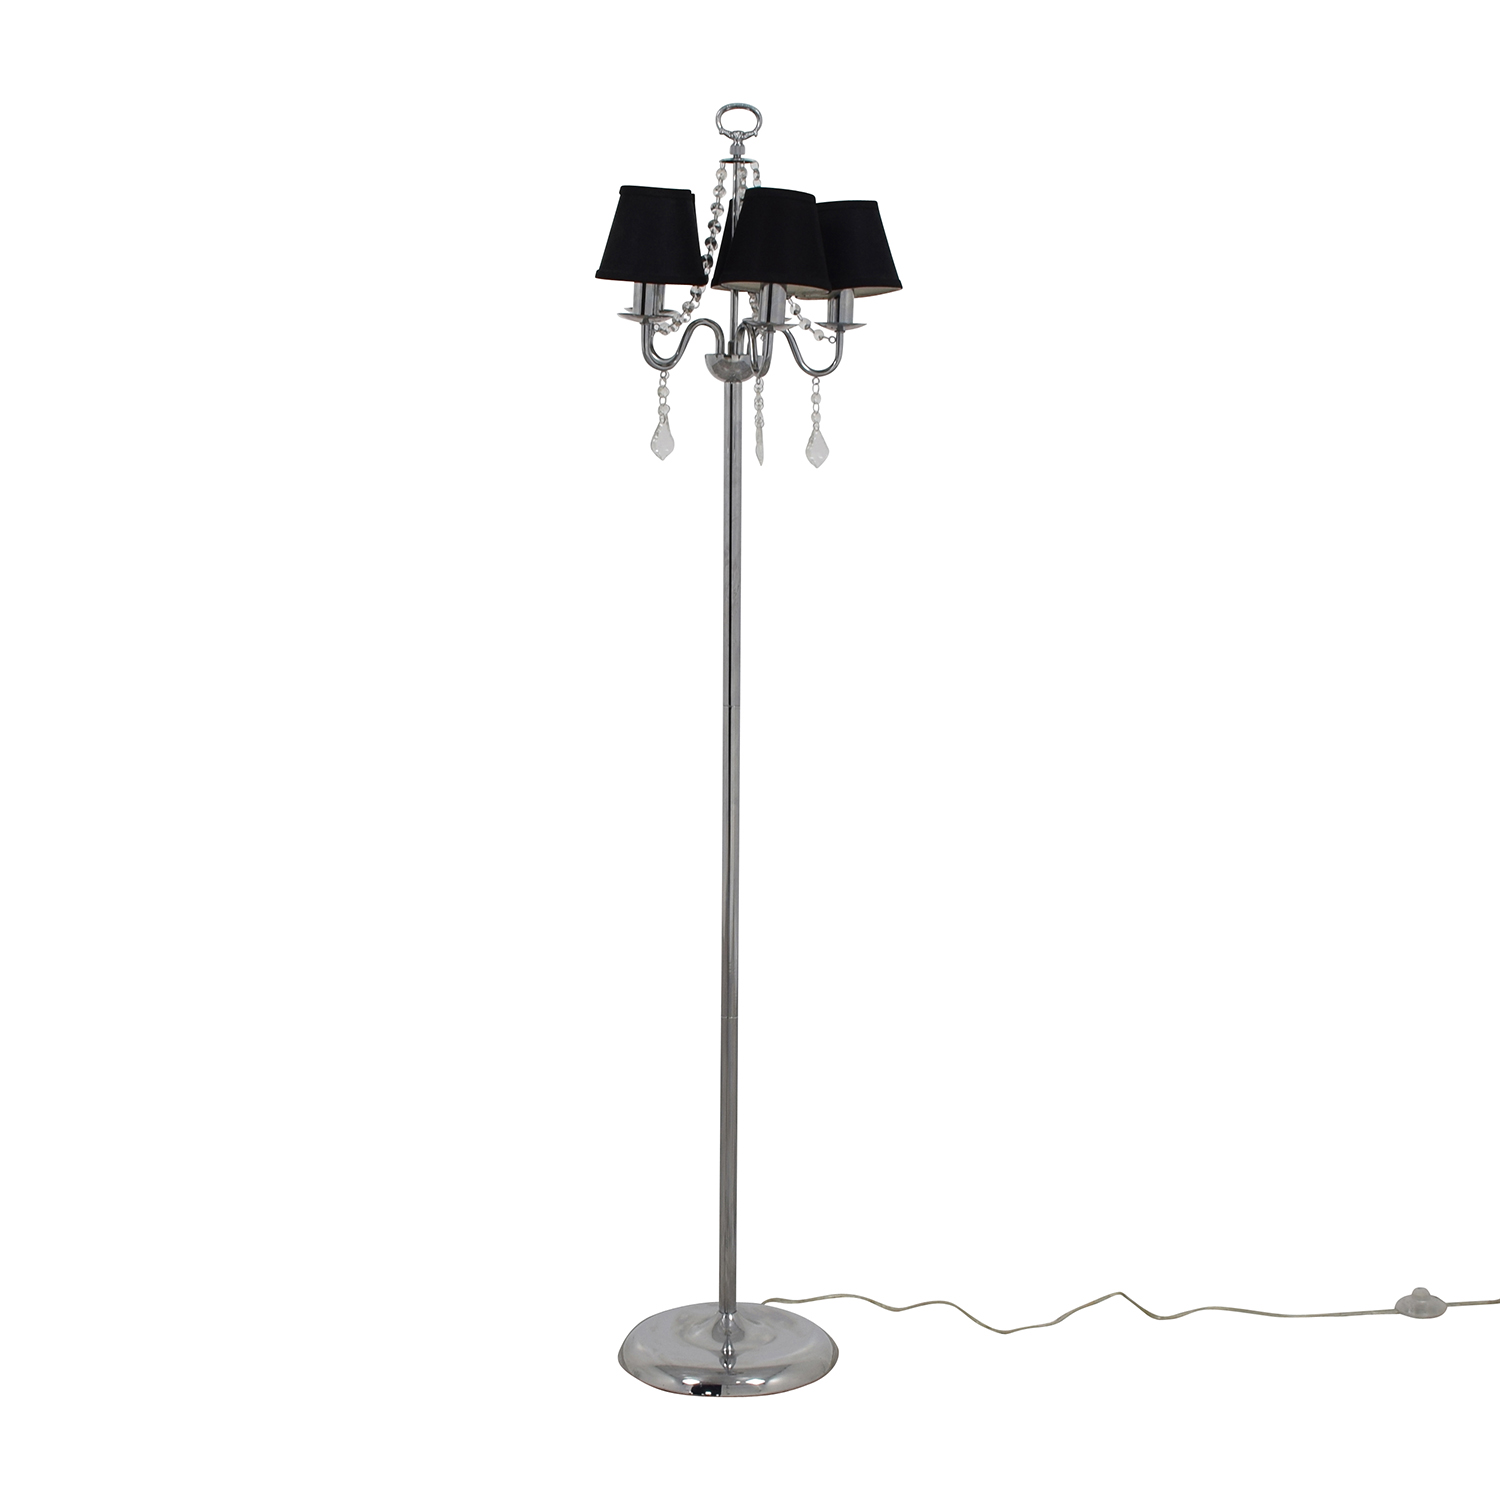 Black Chandelier Floor Lamp with Crystals coupon